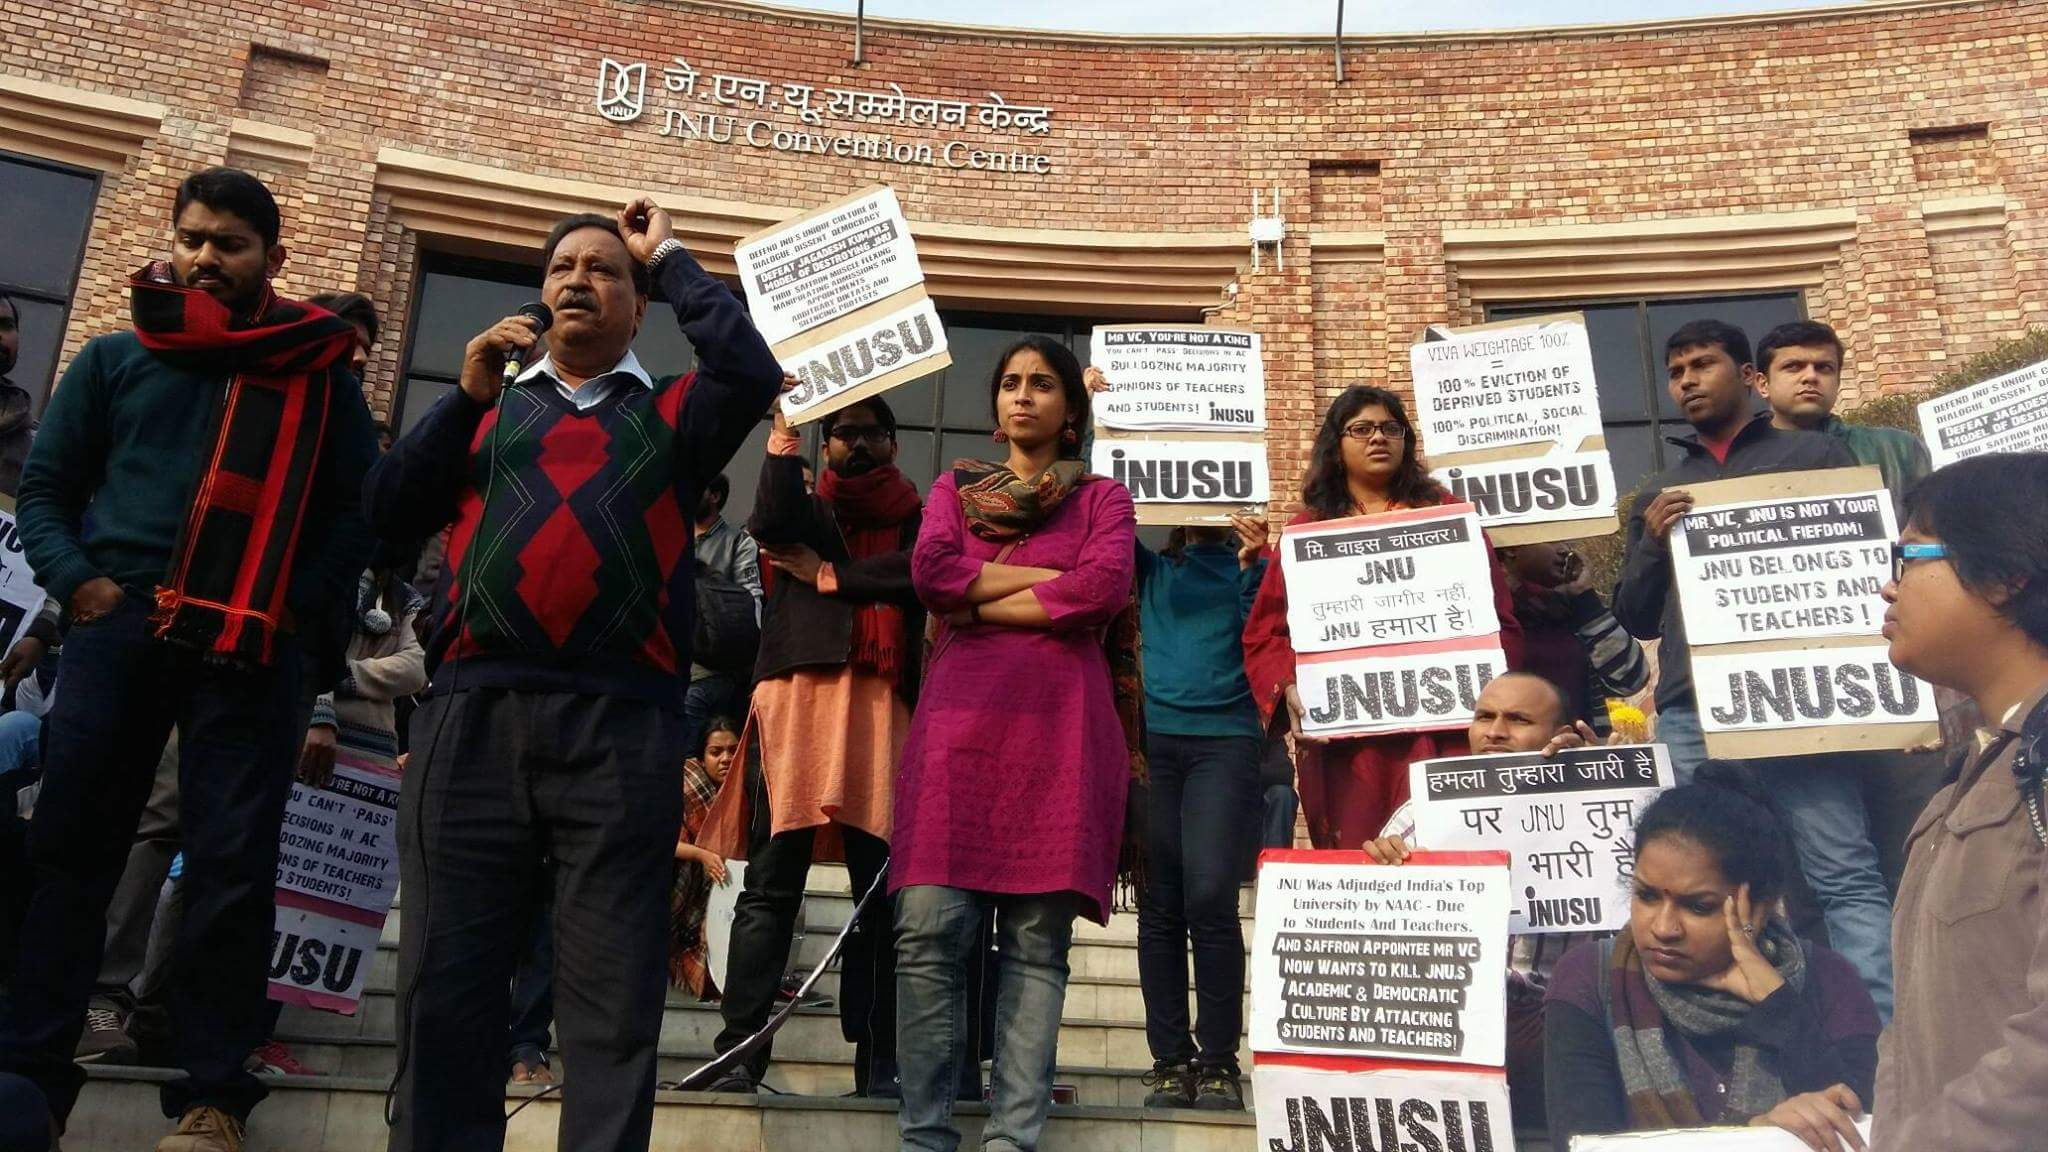 Students in JNU protest about the recent unrest at the academic council meeting. Credit: Twitter